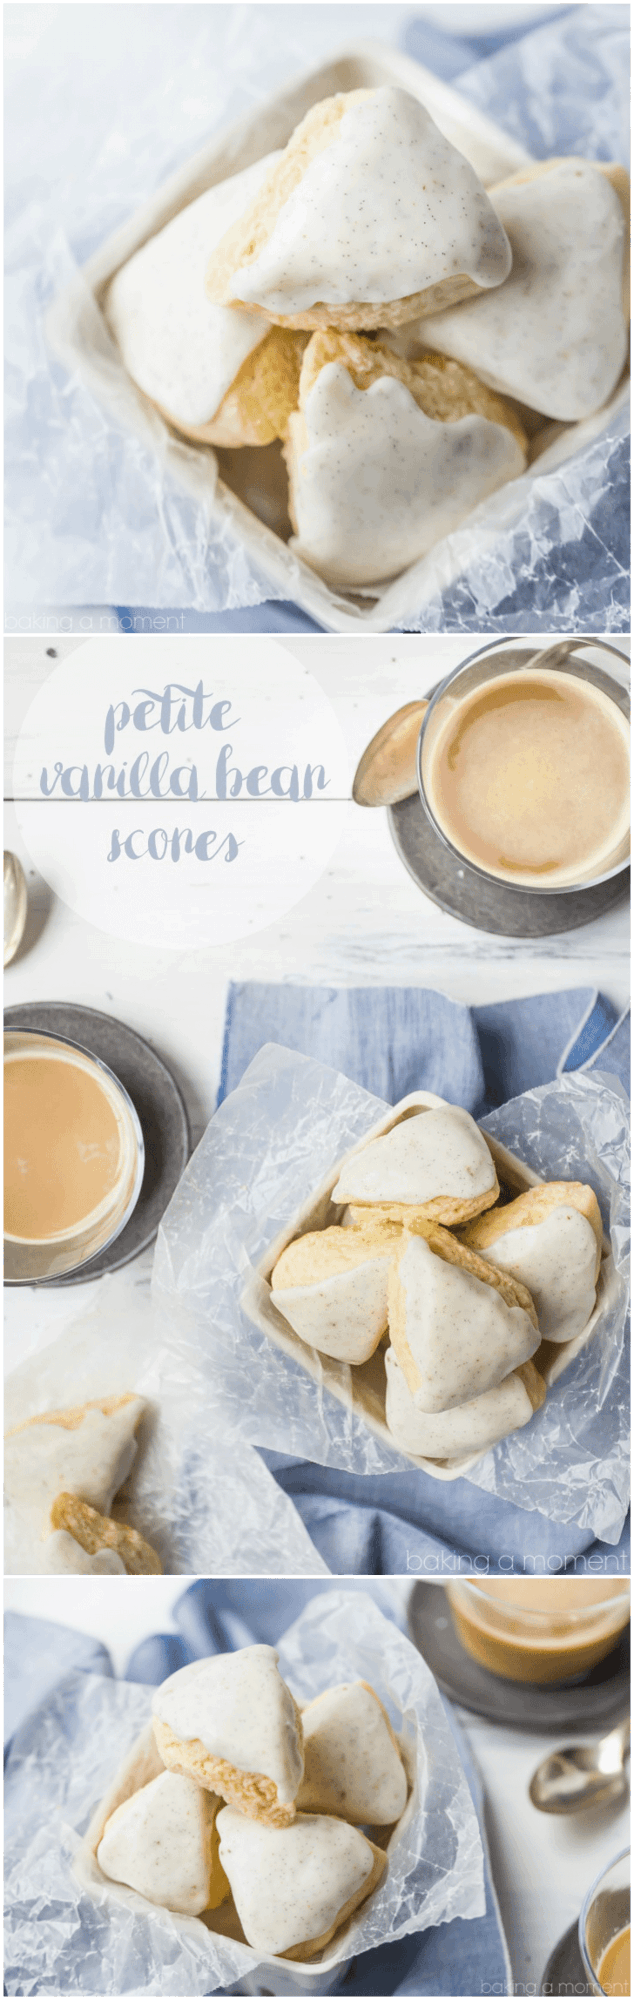 These homemade petite vanilla bean scones tasted even better than the Starbucks version! So simple to make and so good with a cup of coffee. food breakfast brunch